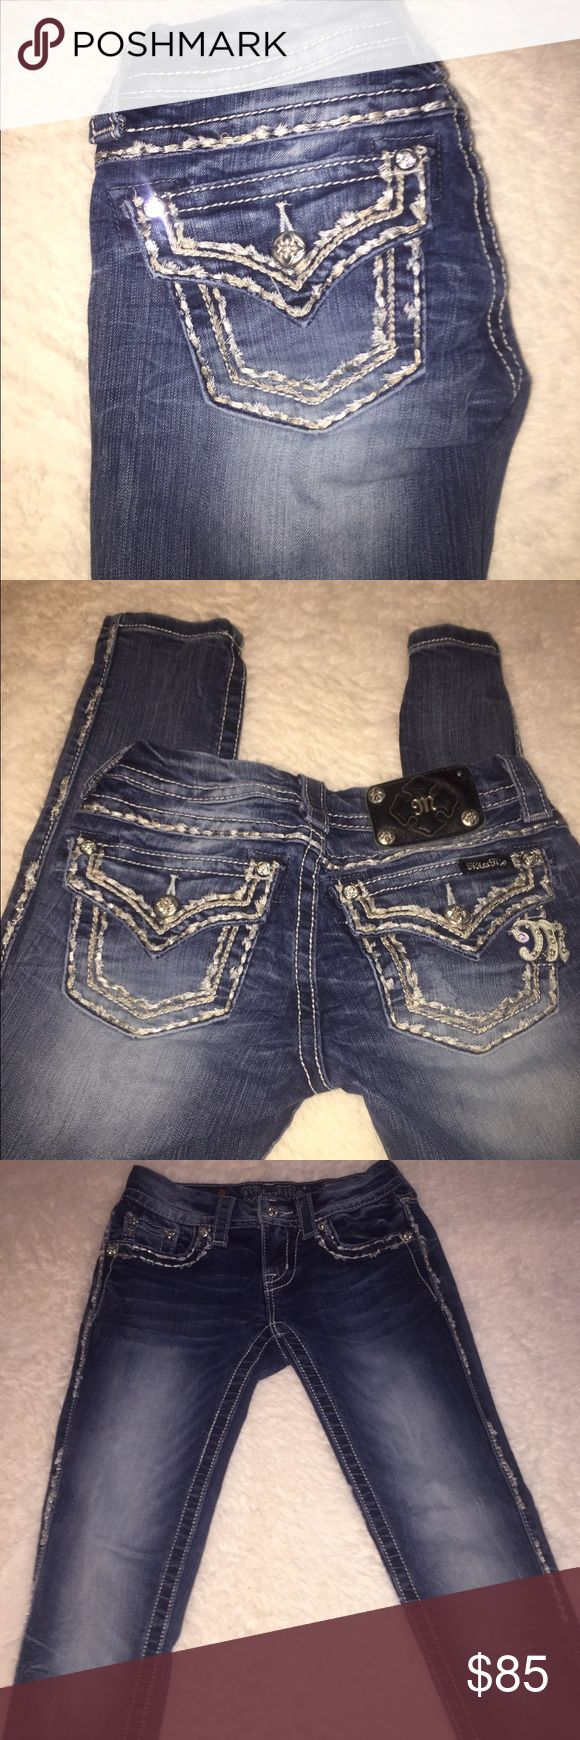 Miss me jeans Miss me cuffed skinny jeans in good condition. Inseam is 28!                                                                ✖️No trades. ✖️No PayPal. ✖️Fast shipper!                                               ✖️Free gift with every purchase.                                                    ✖️Top rated seller. Buckle Jeans Skinny